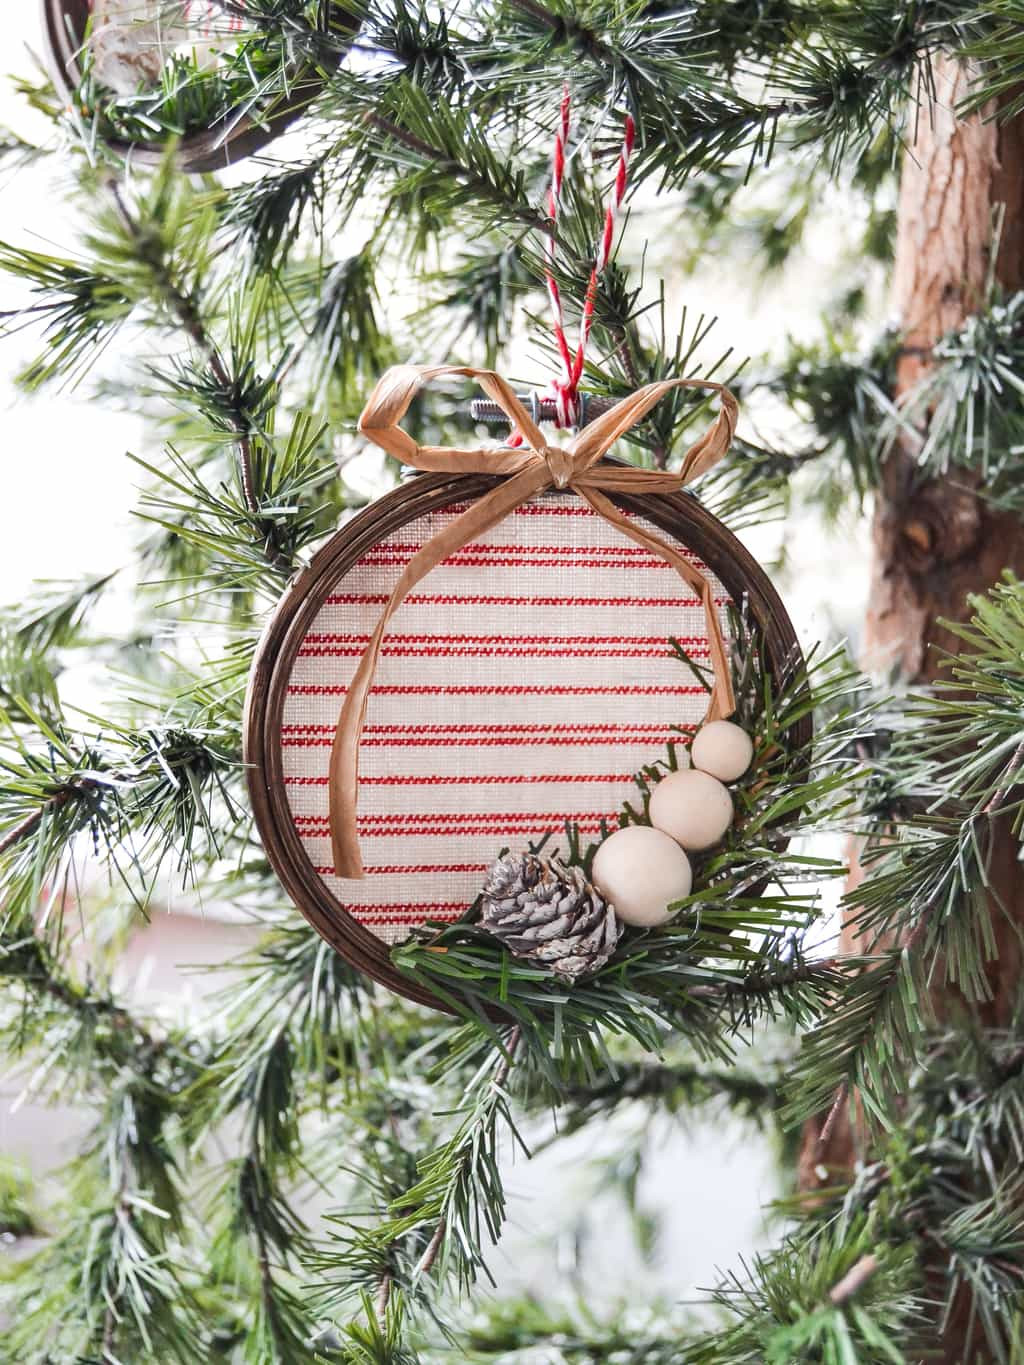 Best ideas about DIY Christmas Ornament . Save or Pin Homemade Christmas Ornaments 90 Options My Creative Days Now.